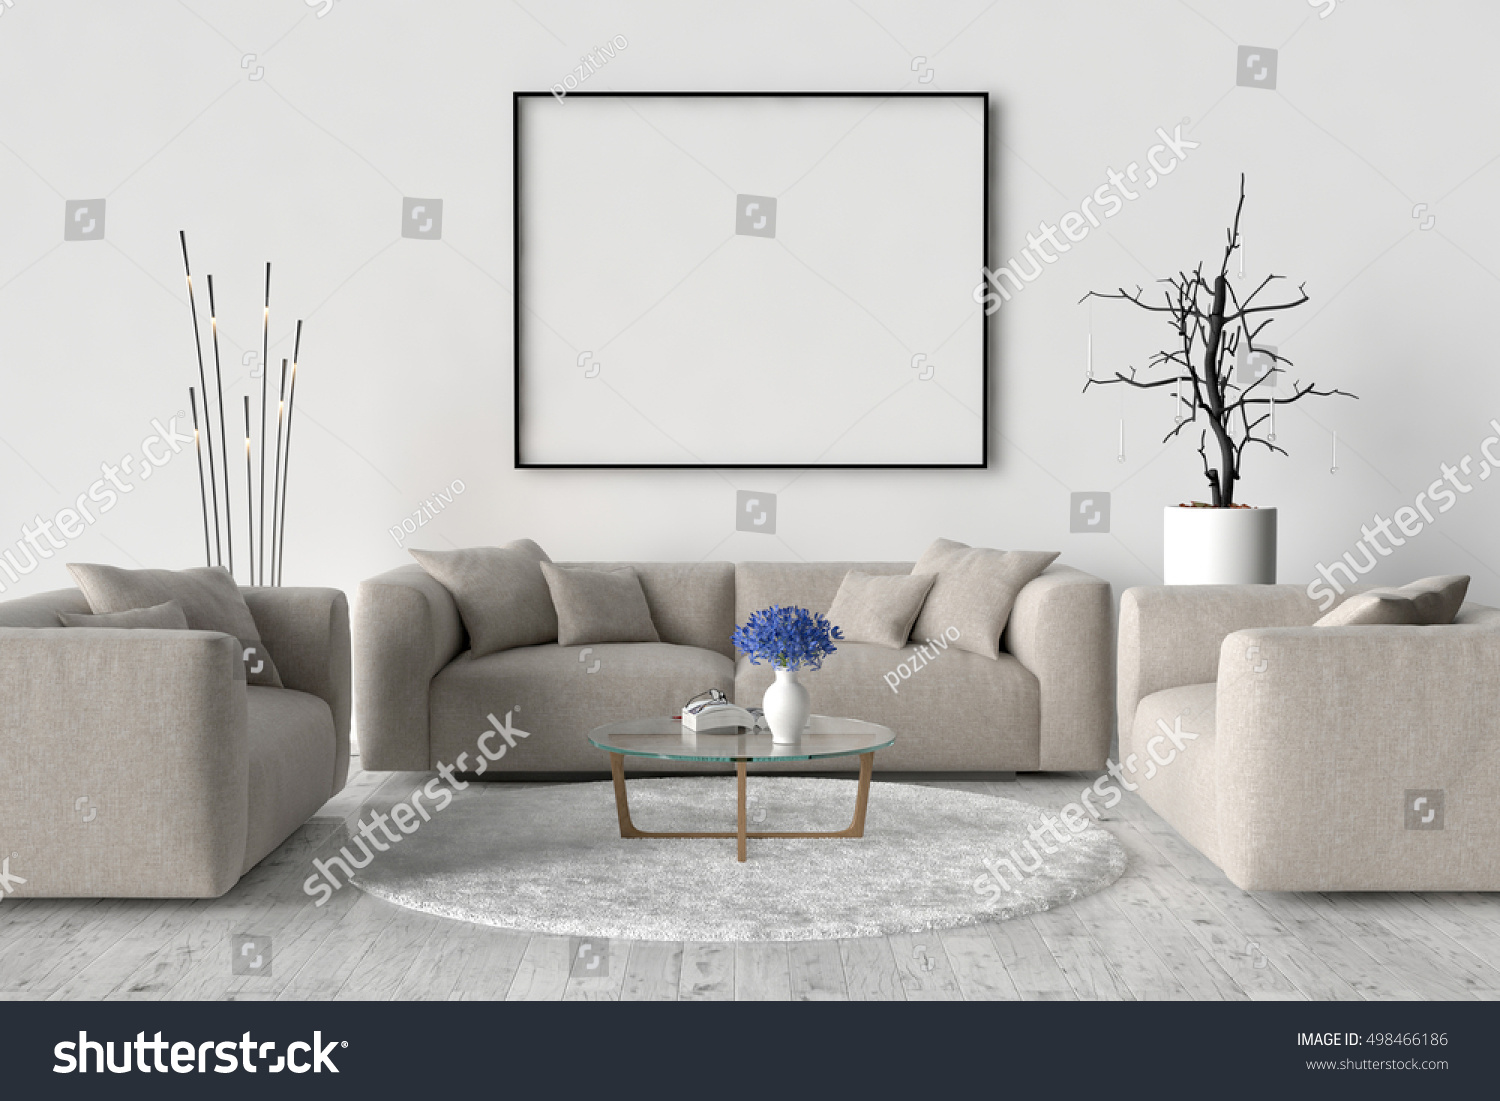 living room sofa two chairs table stock illustration 498466186 shutterstock. Black Bedroom Furniture Sets. Home Design Ideas